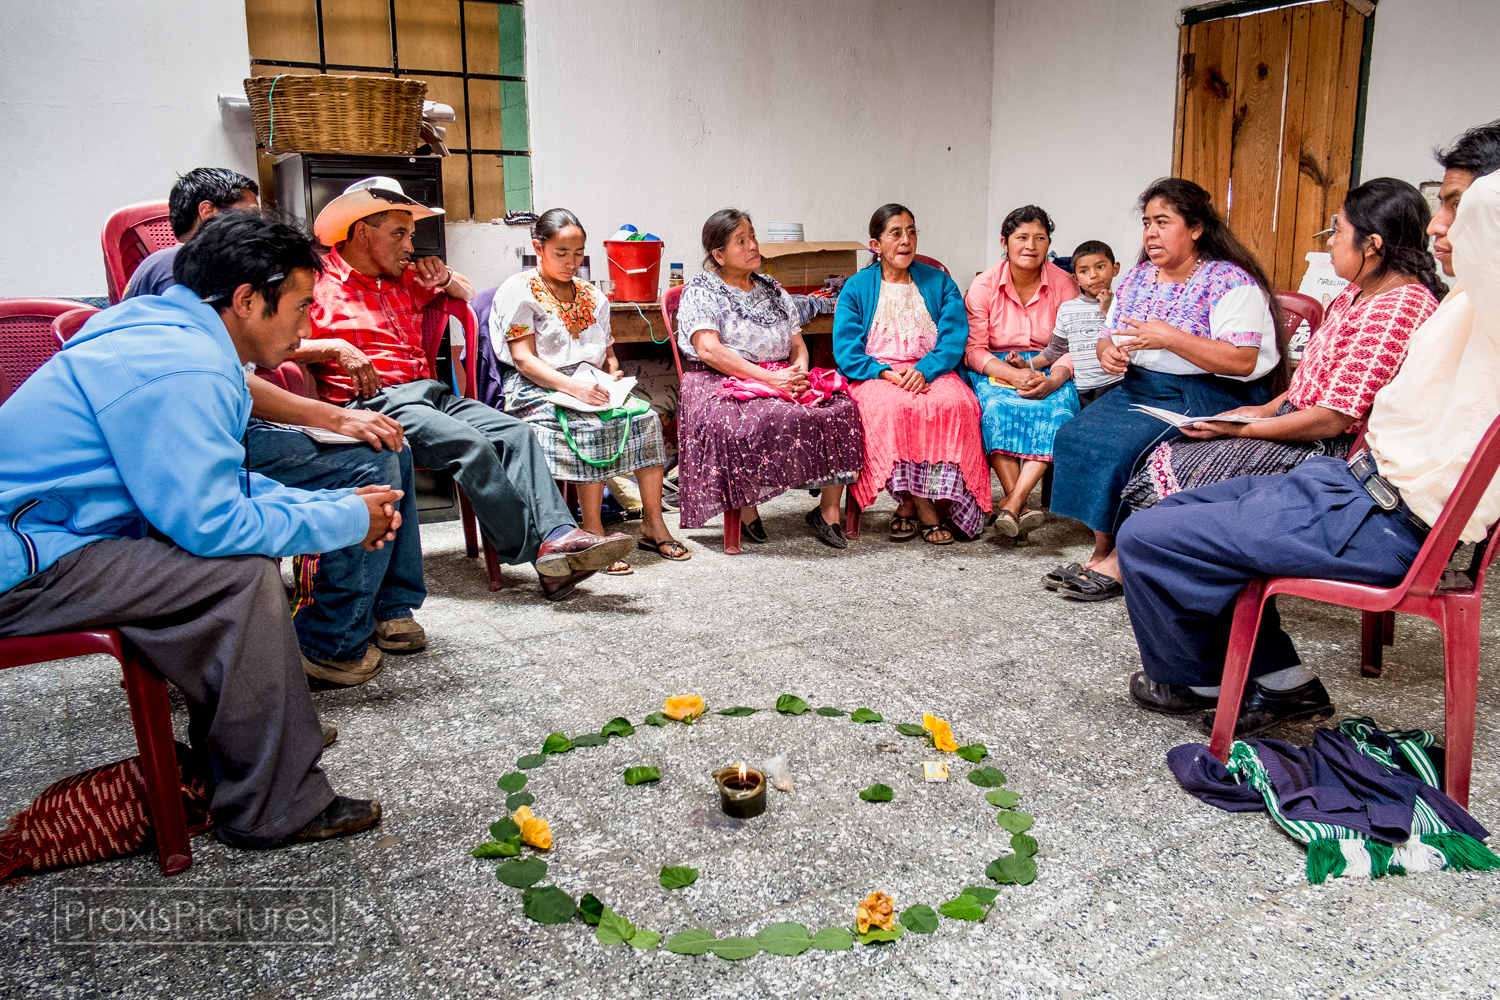 The Health Tribunal project was initiated by community members of San Miguel Ixtahuacán following participation in a community-based health project.  Preliminary findings of this research indicate that community members' health has been threatened by the local Marlin Mine, a subsidiary operation of Canadian company Goldcorp,